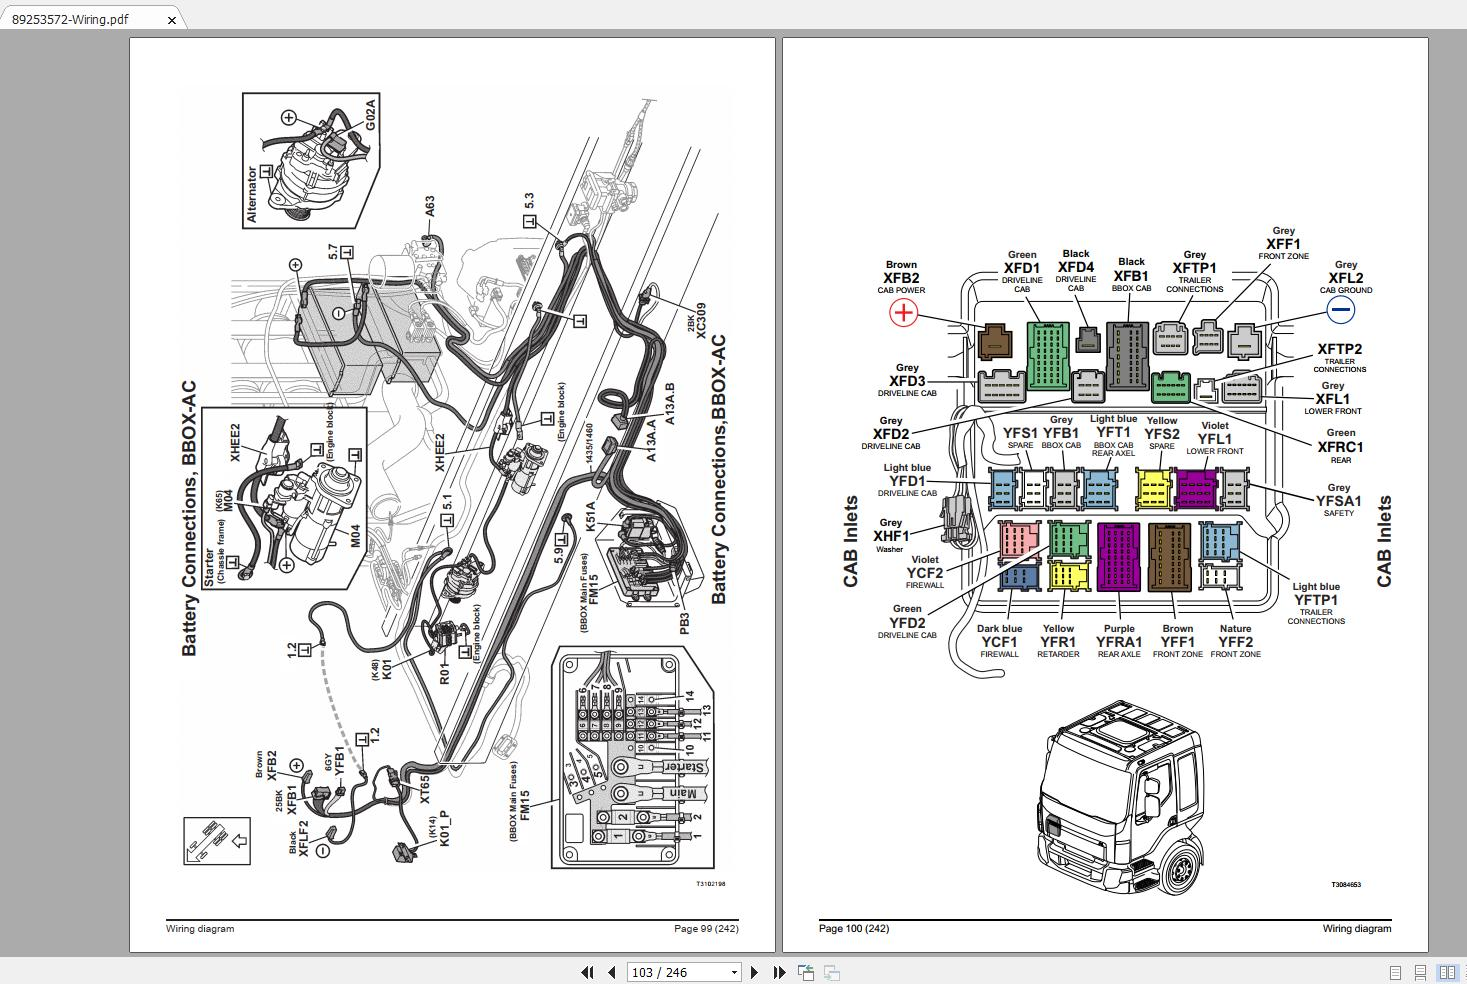 Mid Bus Wiring Diagrams - 88 Chevy Wiring Harness Diagram for Wiring  Diagram SchematicsWiring Diagram Schematics